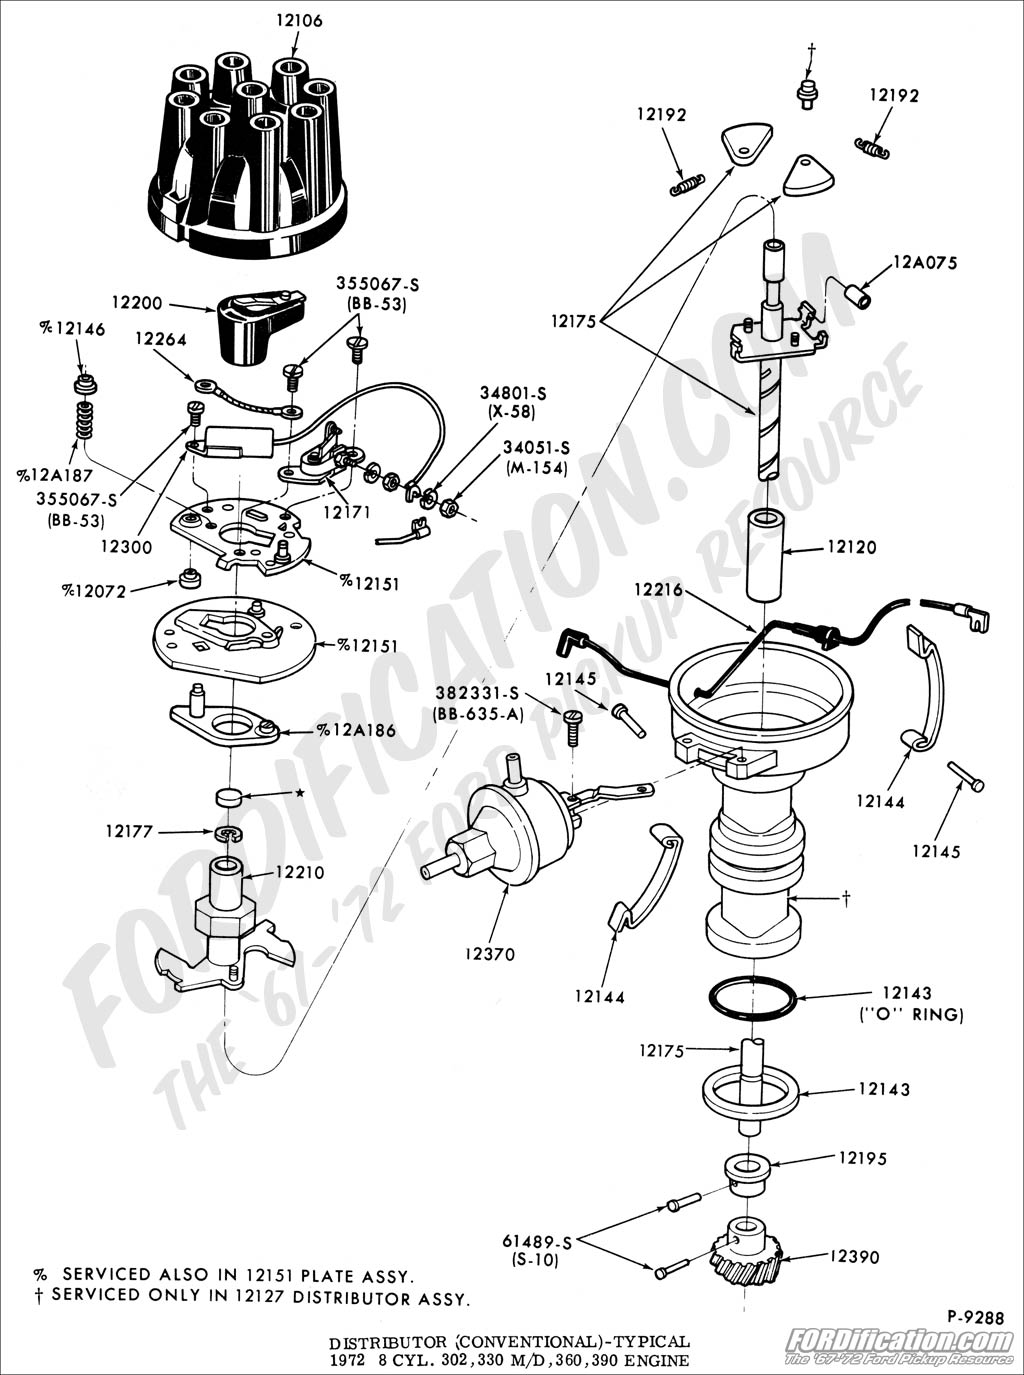 hei distributor wiring diagram for ford 289 best wiring library 4.3 Vortec Distributor Install distributor v8 02 ford truck technical drawings and schematics section i ford 302 distributor